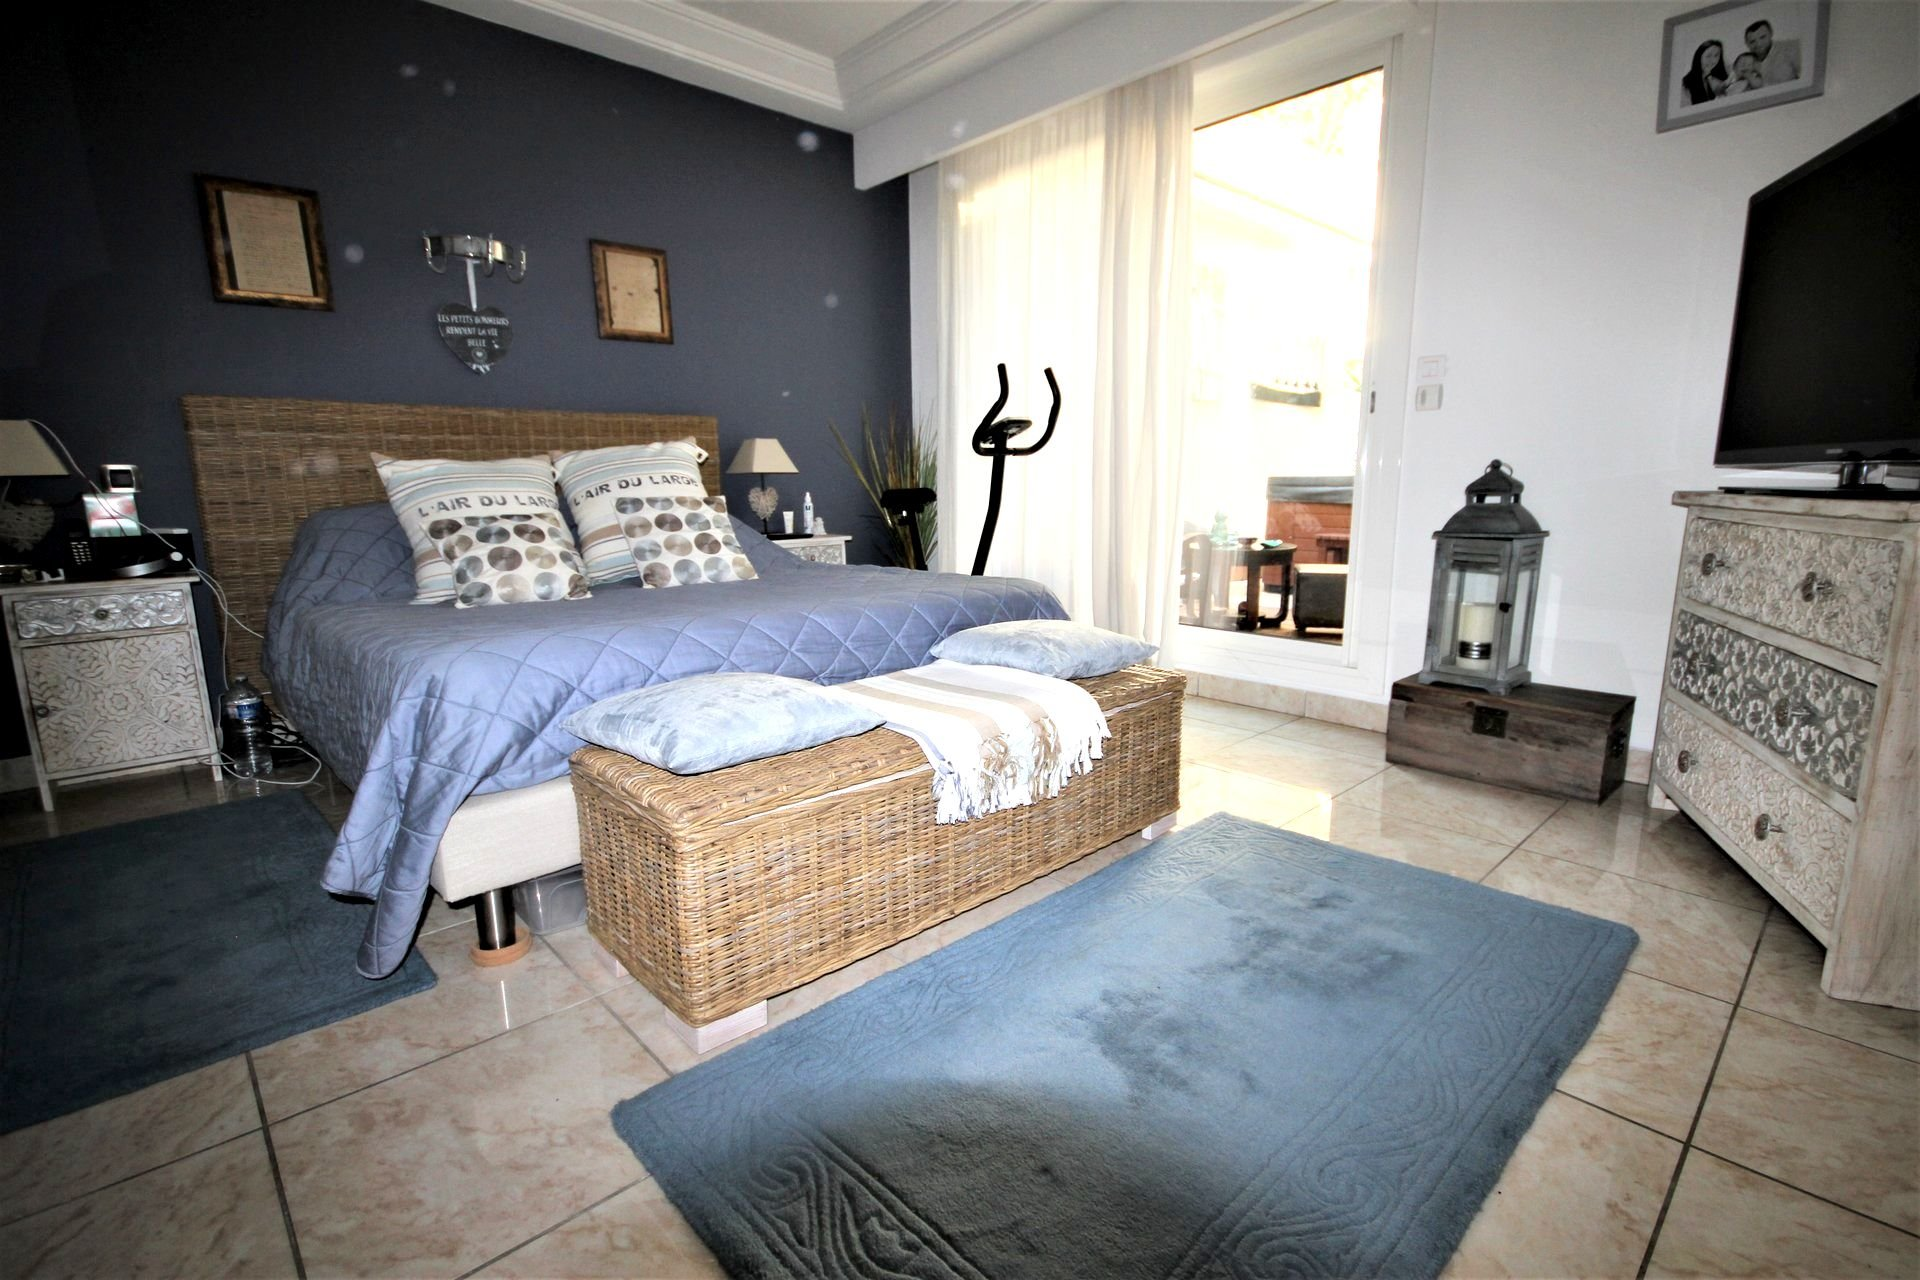 FOR SALE LUXUOUS APARTMENT 3 BEDROOMS SUIT IN CANNES